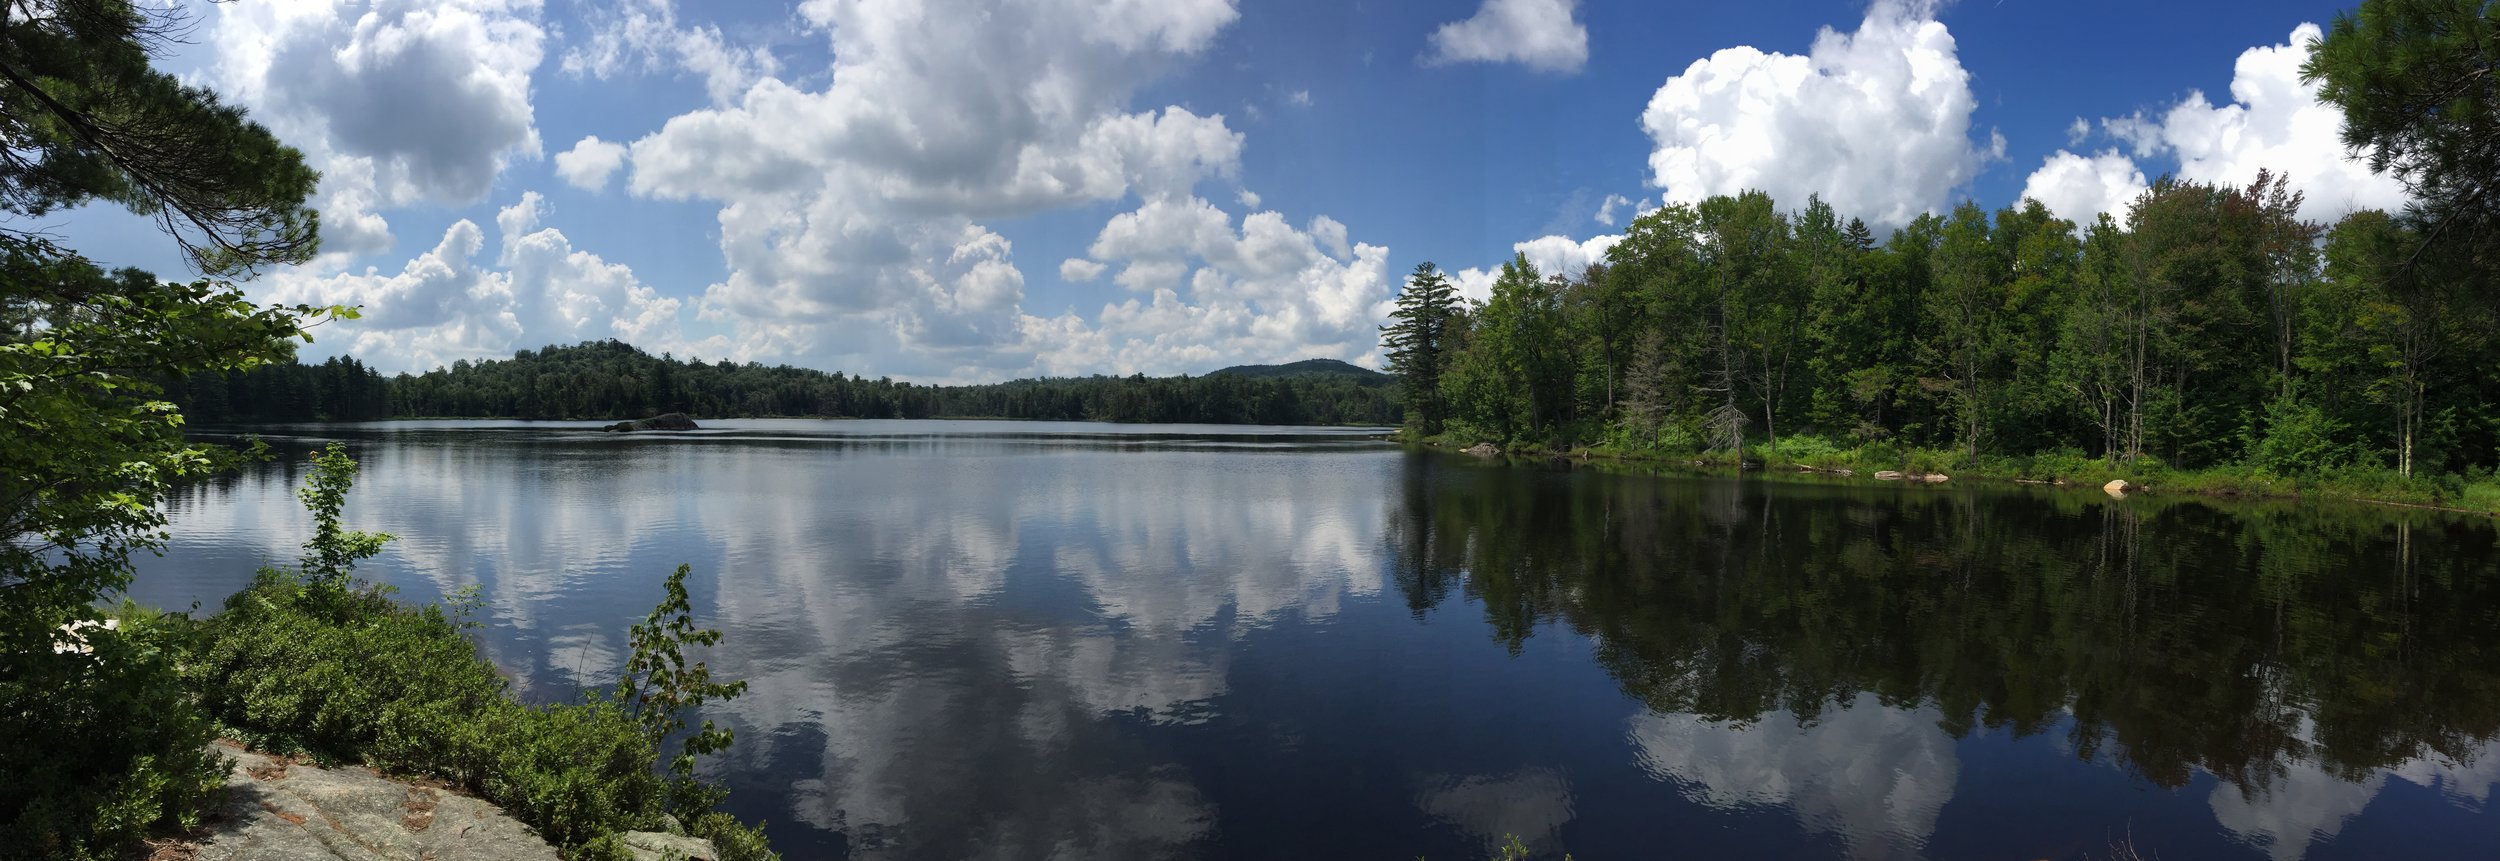 BillHahn-HighAdventure-LakeForestAndCloudsReflecting-Panorama.JPG